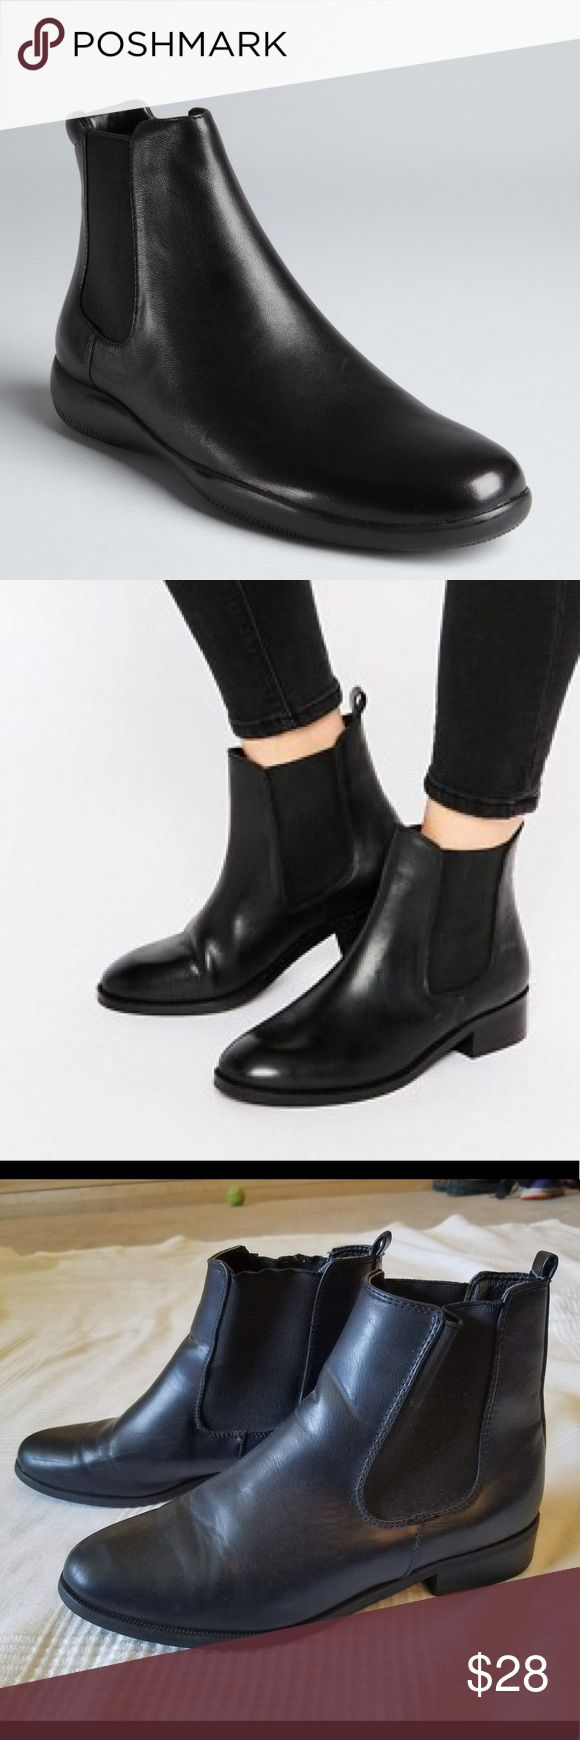 Urban Outfitters BDG Black Booties Shoes Barely worn, excellent condition, and low heel makes them comfortable. Great with skinny jeans, skirts, and dresses. Urban Outfitters Shoes Ankle Boots & Booties